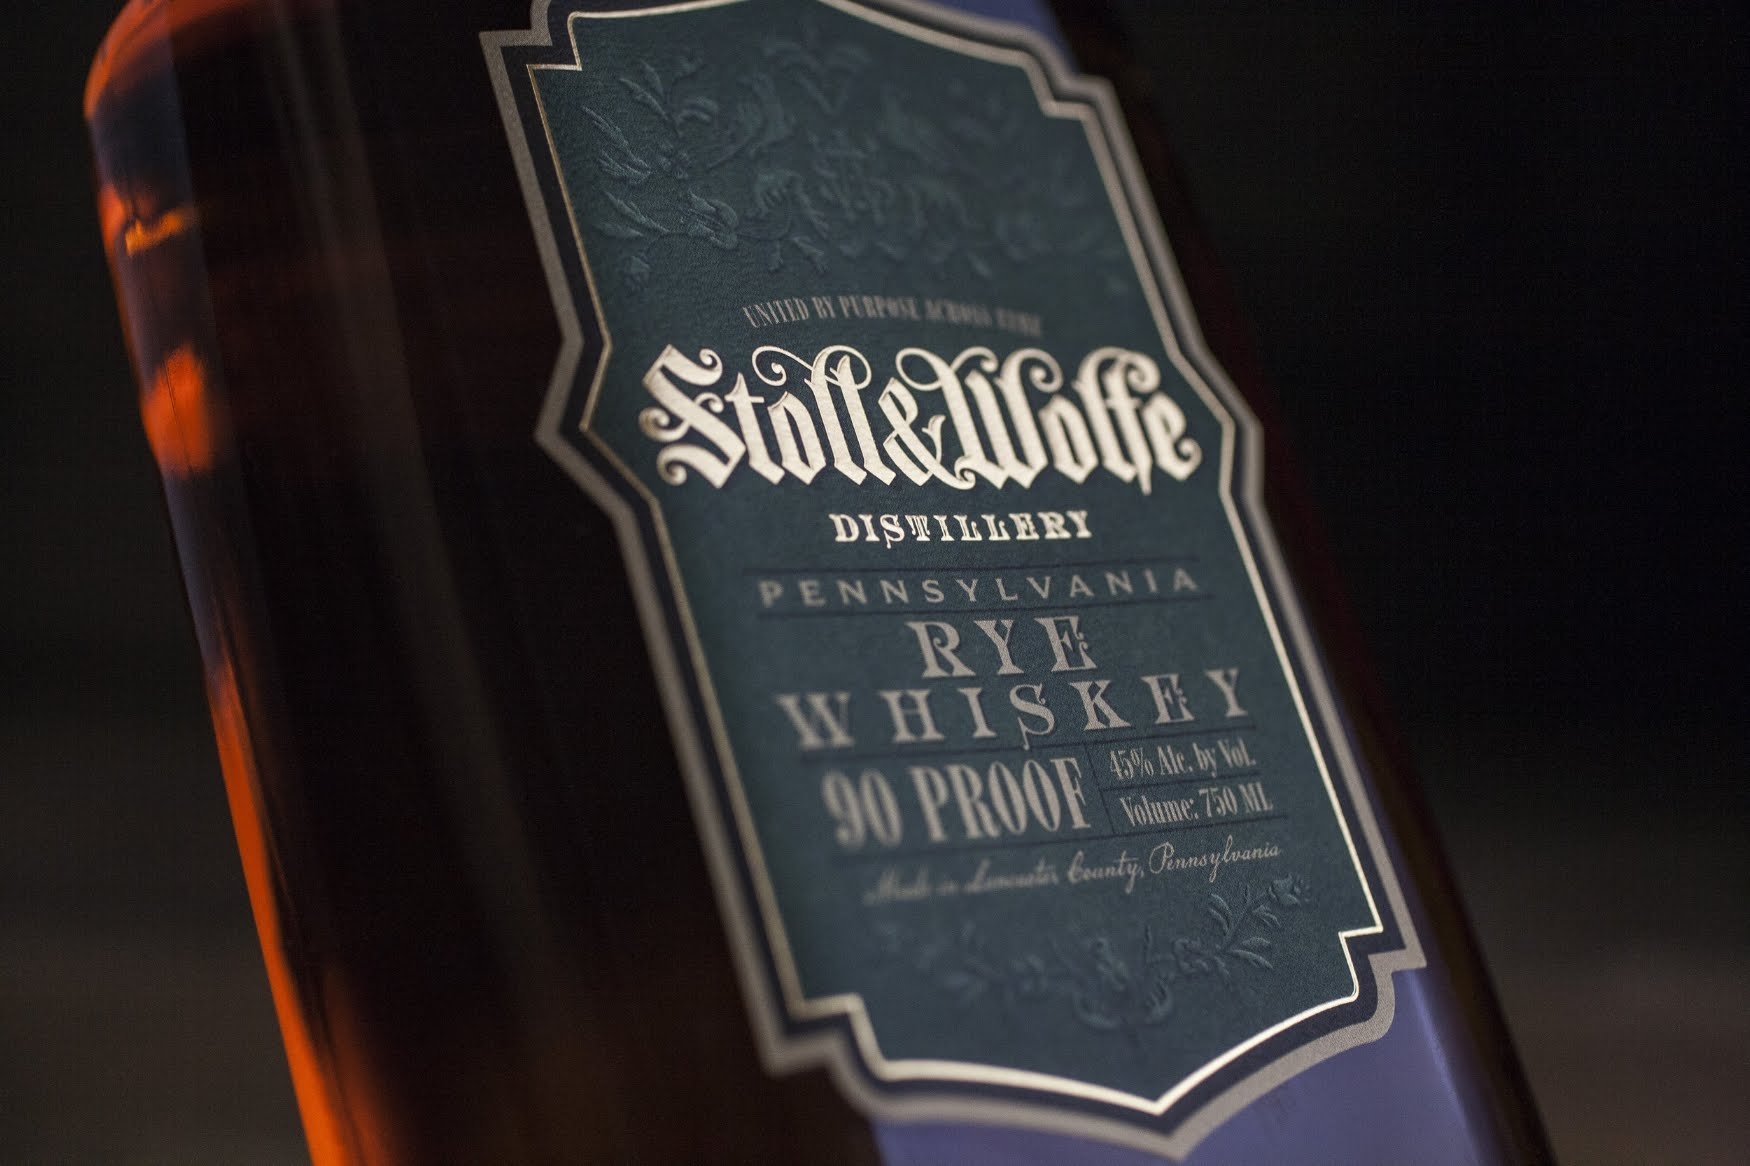 Stoll & Wolfe Distillery image 0